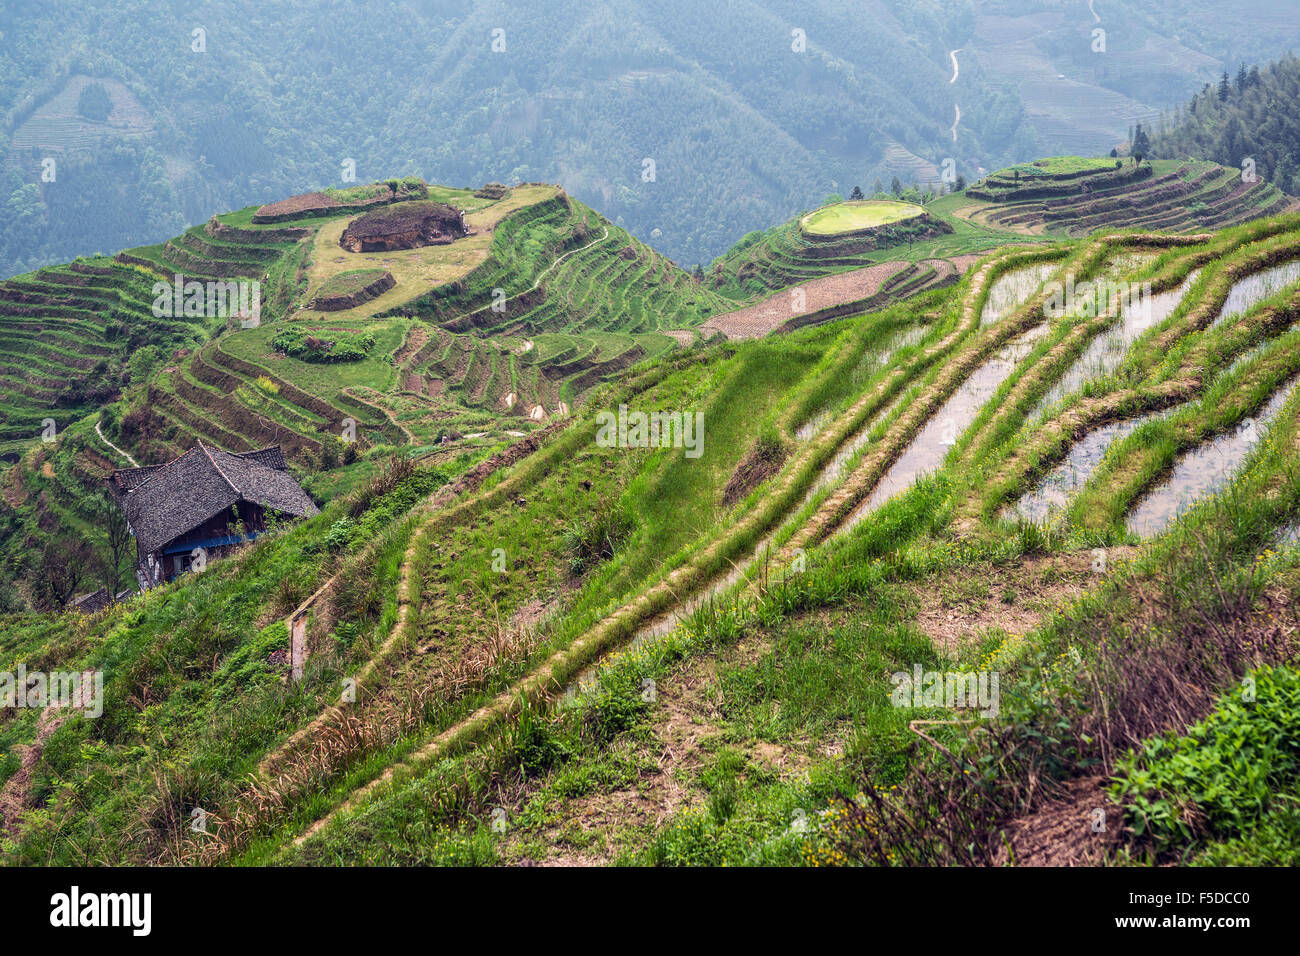 Layered rice terraces of Longii Titian (Dragon's Backbone Terraces), Guangxi, China - Stock Image